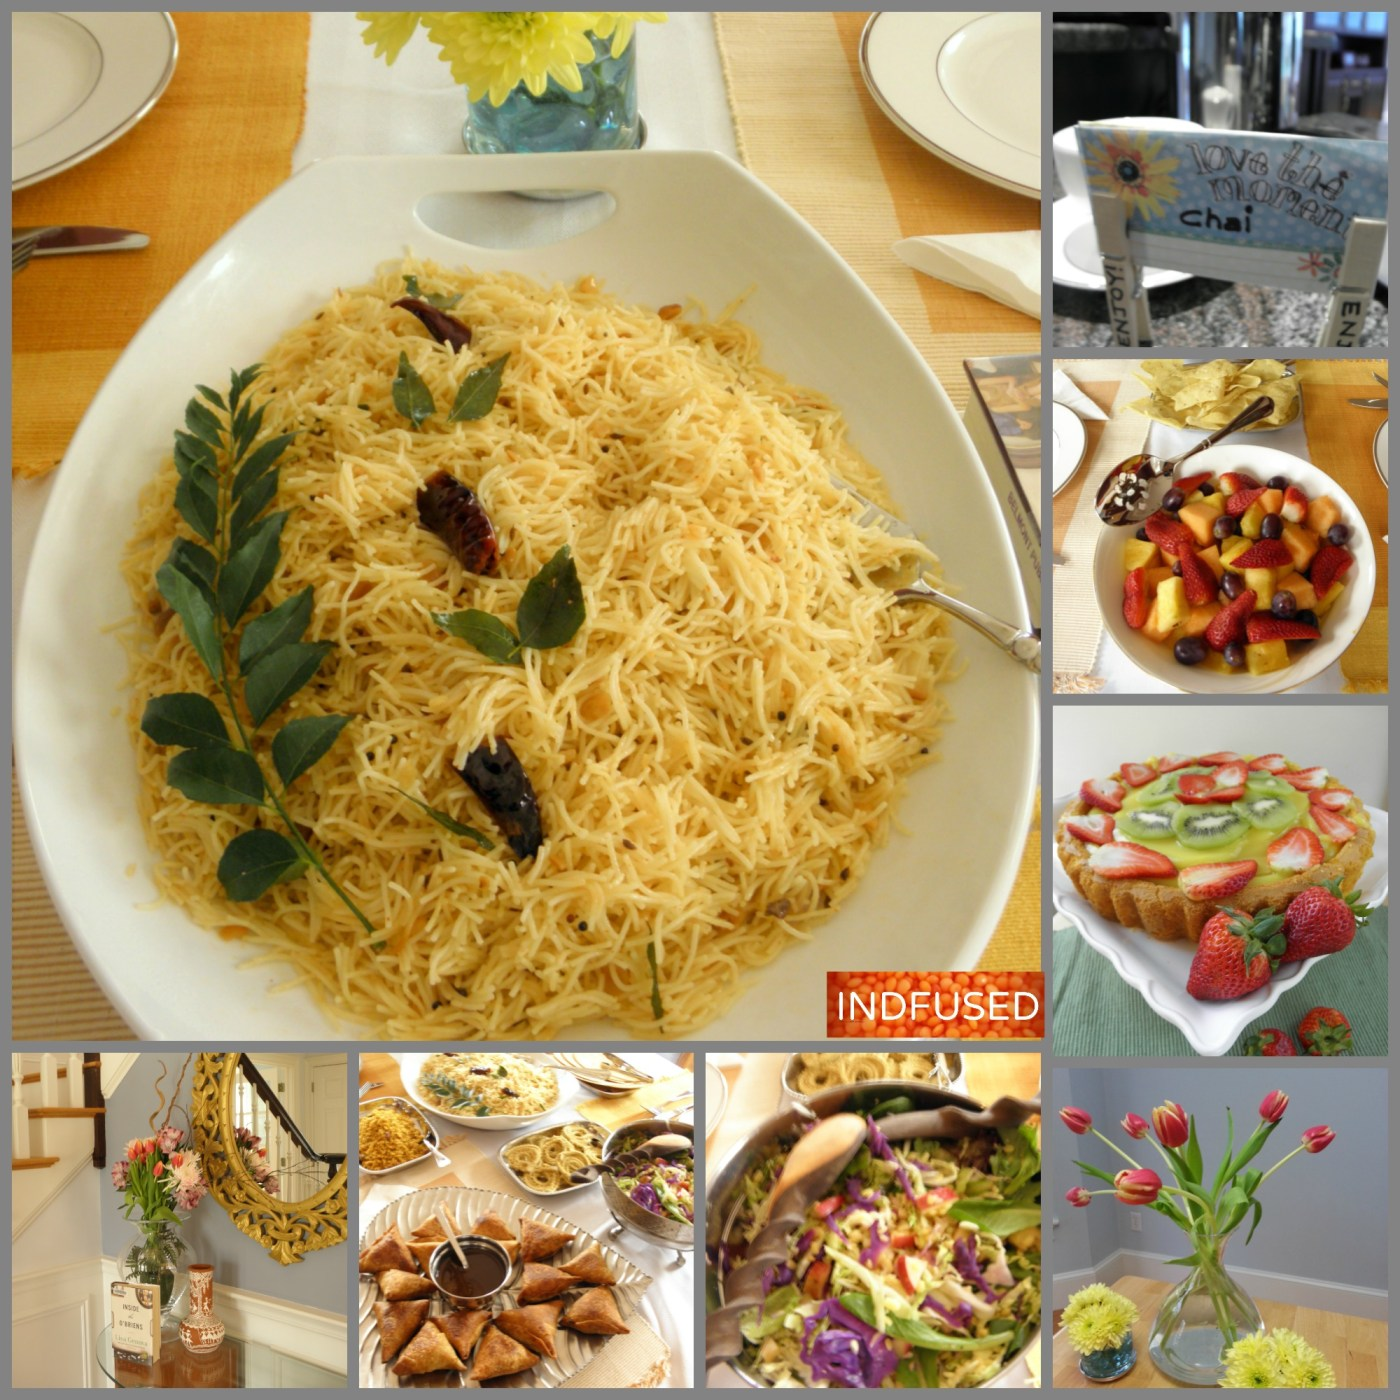 Vegetarian,Indian and Thai flavored seviya upma with Bambino brand roasted noodles, peanut meal and classic Indian cuisine tempering. Served with samosas , chida and chai. Seviya recipe with gluten free option too.